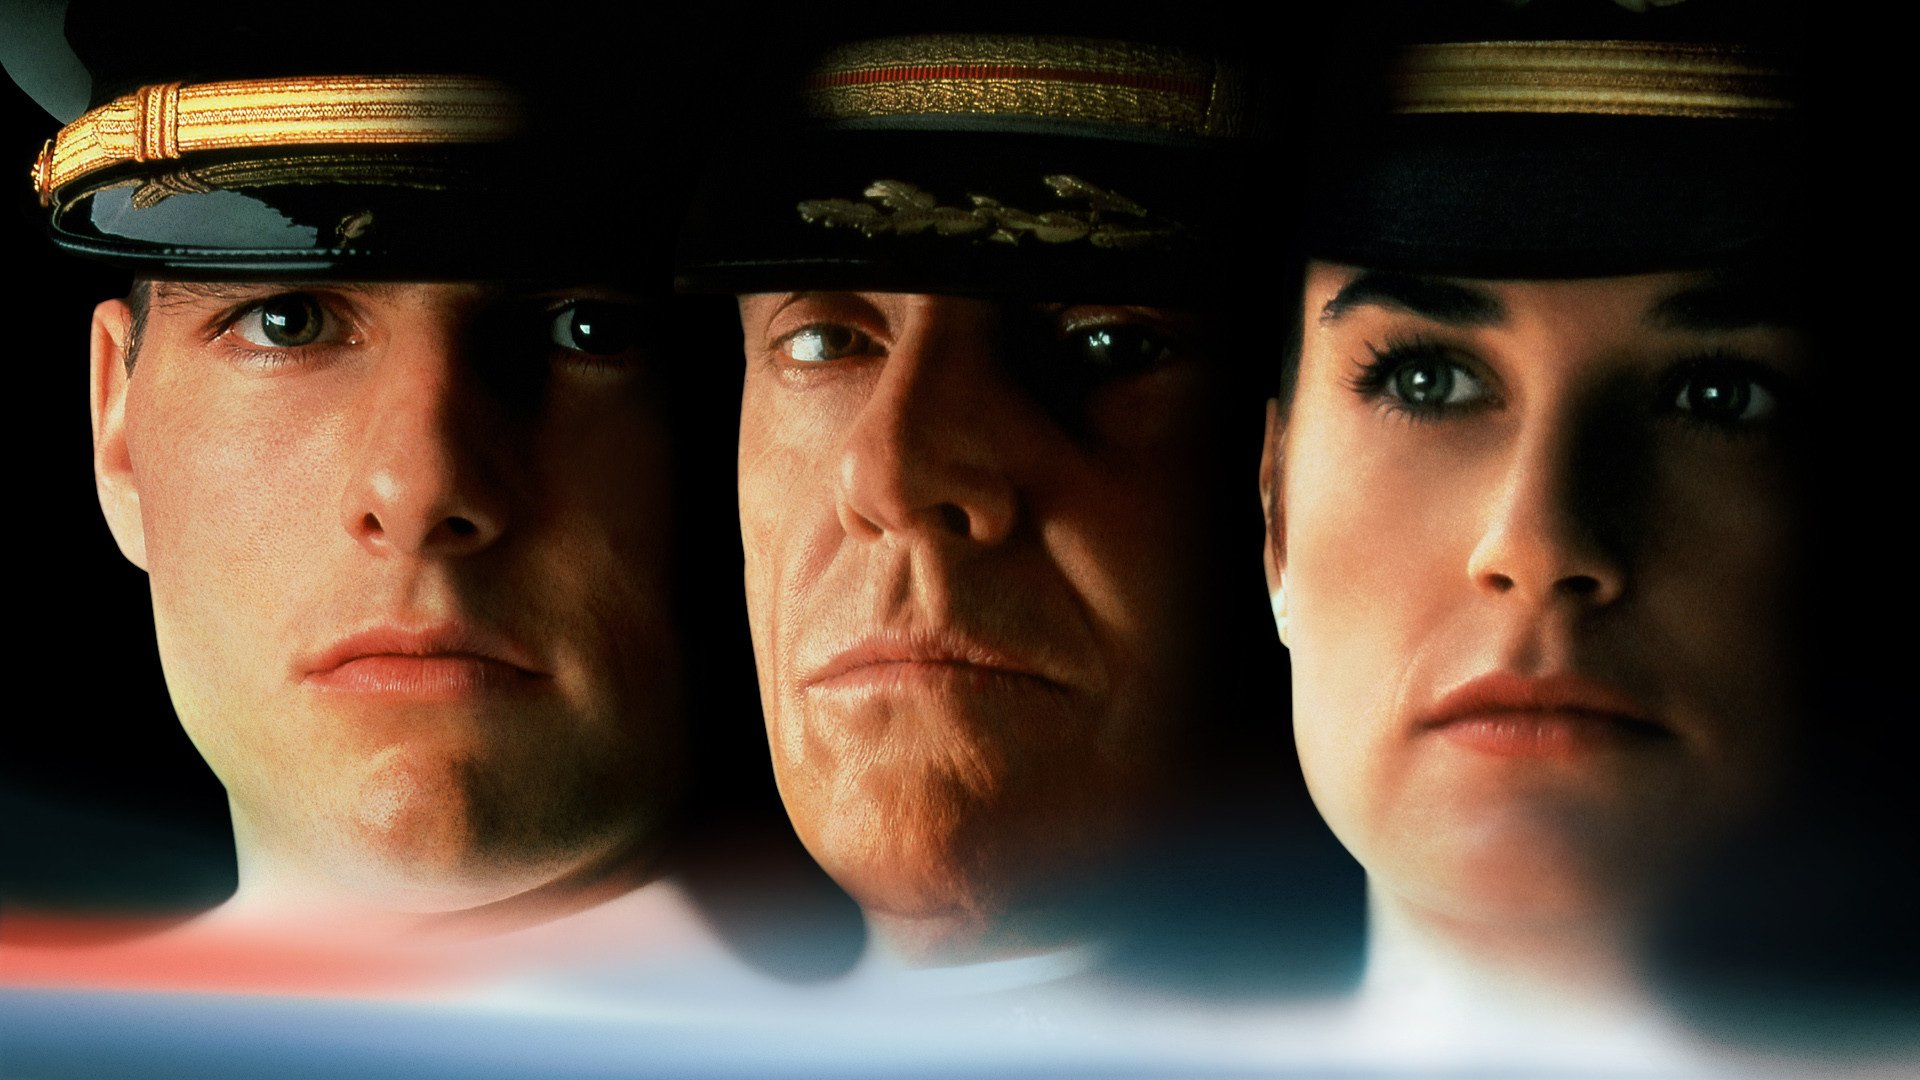 a few good men symbolism A few good men' summary of the movie along with character analysis: did the characters of the movie display good moral values.